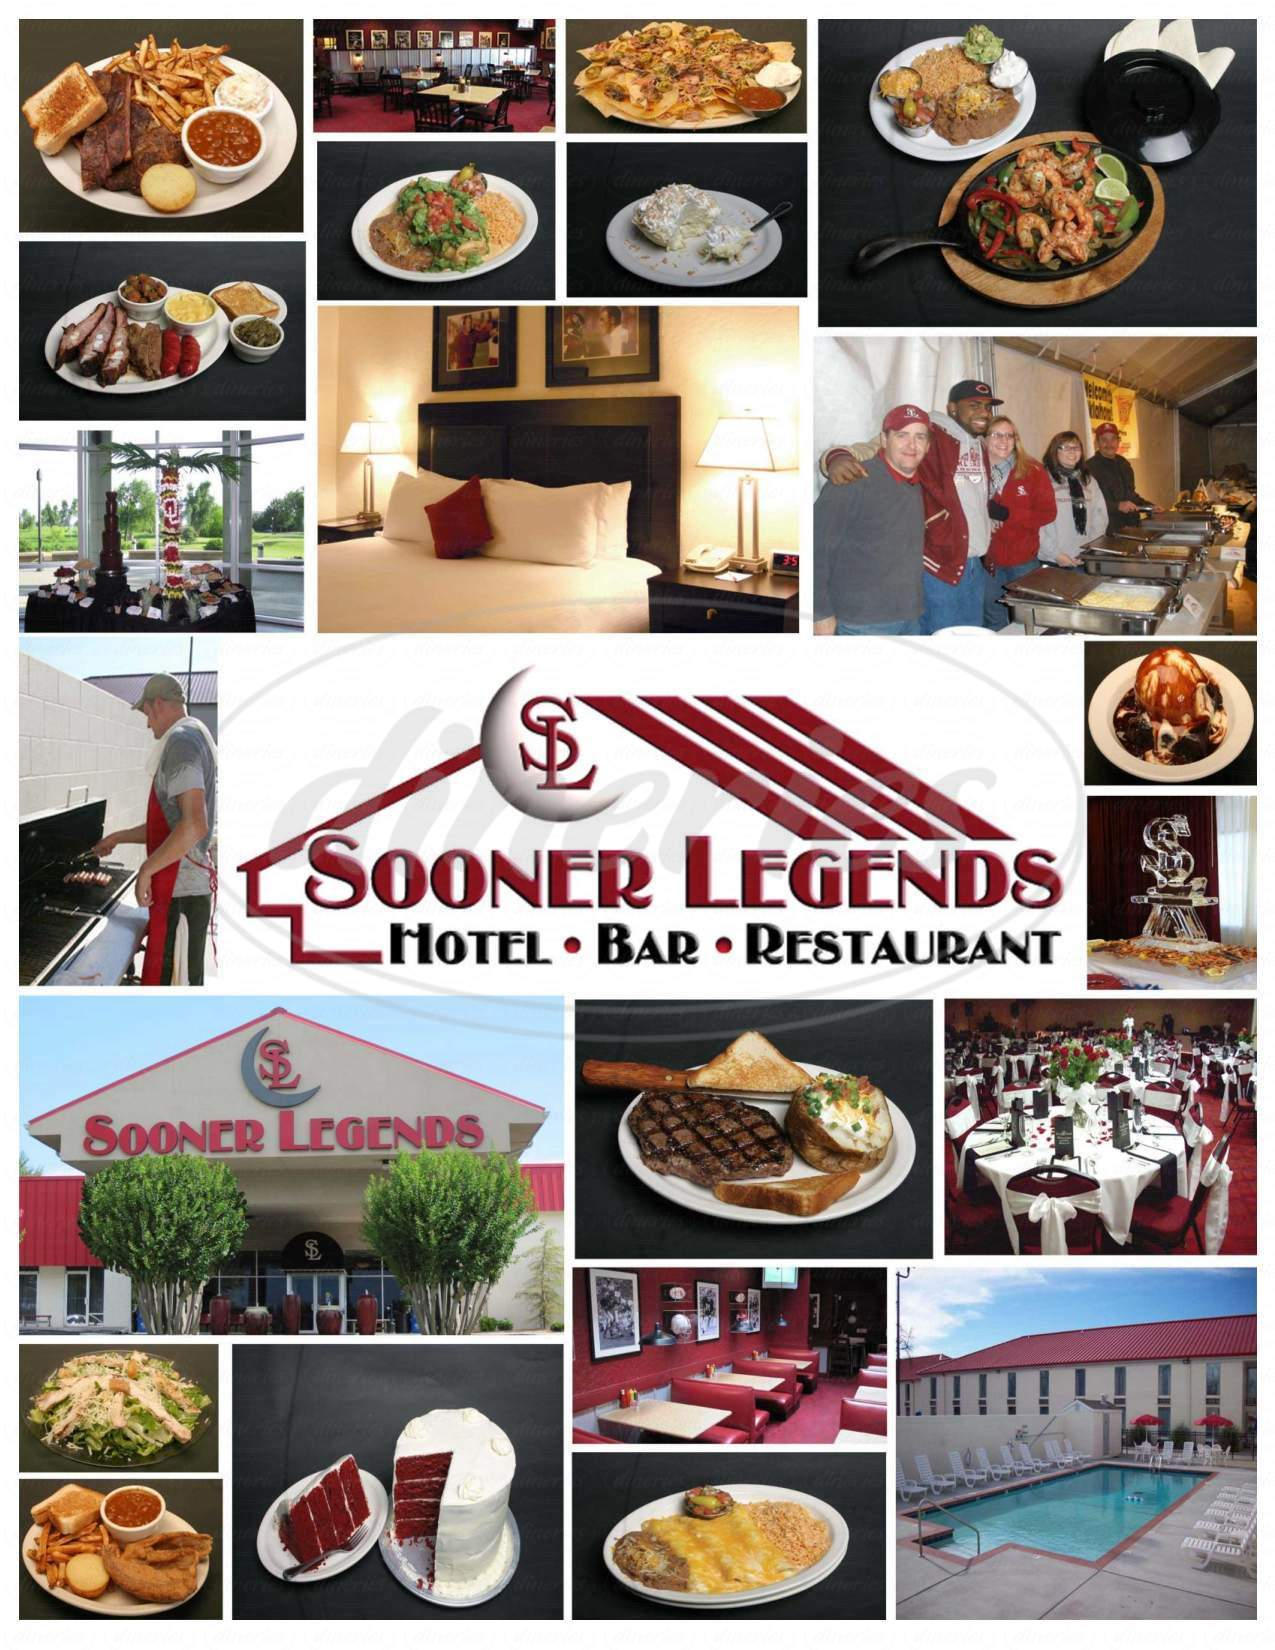 menu for Sooner Legends Hotel-Restaurant-Bar